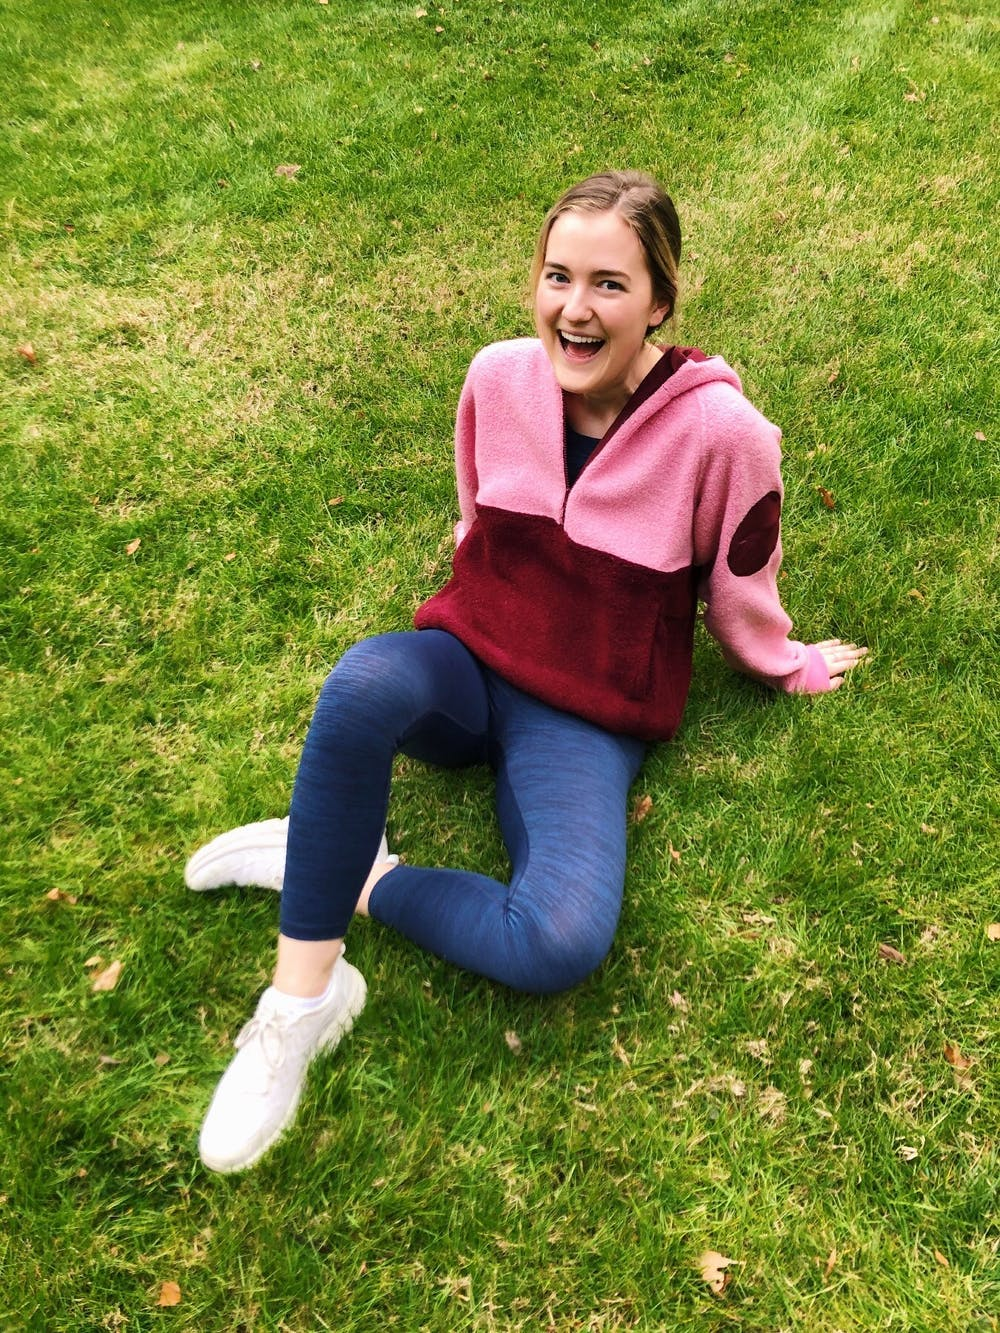 <p>Ava Cummings poses in Outdoor Voices apparel for a social media post as part of her job of being an OVU Crew representative for the brand.&nbsp;</p>